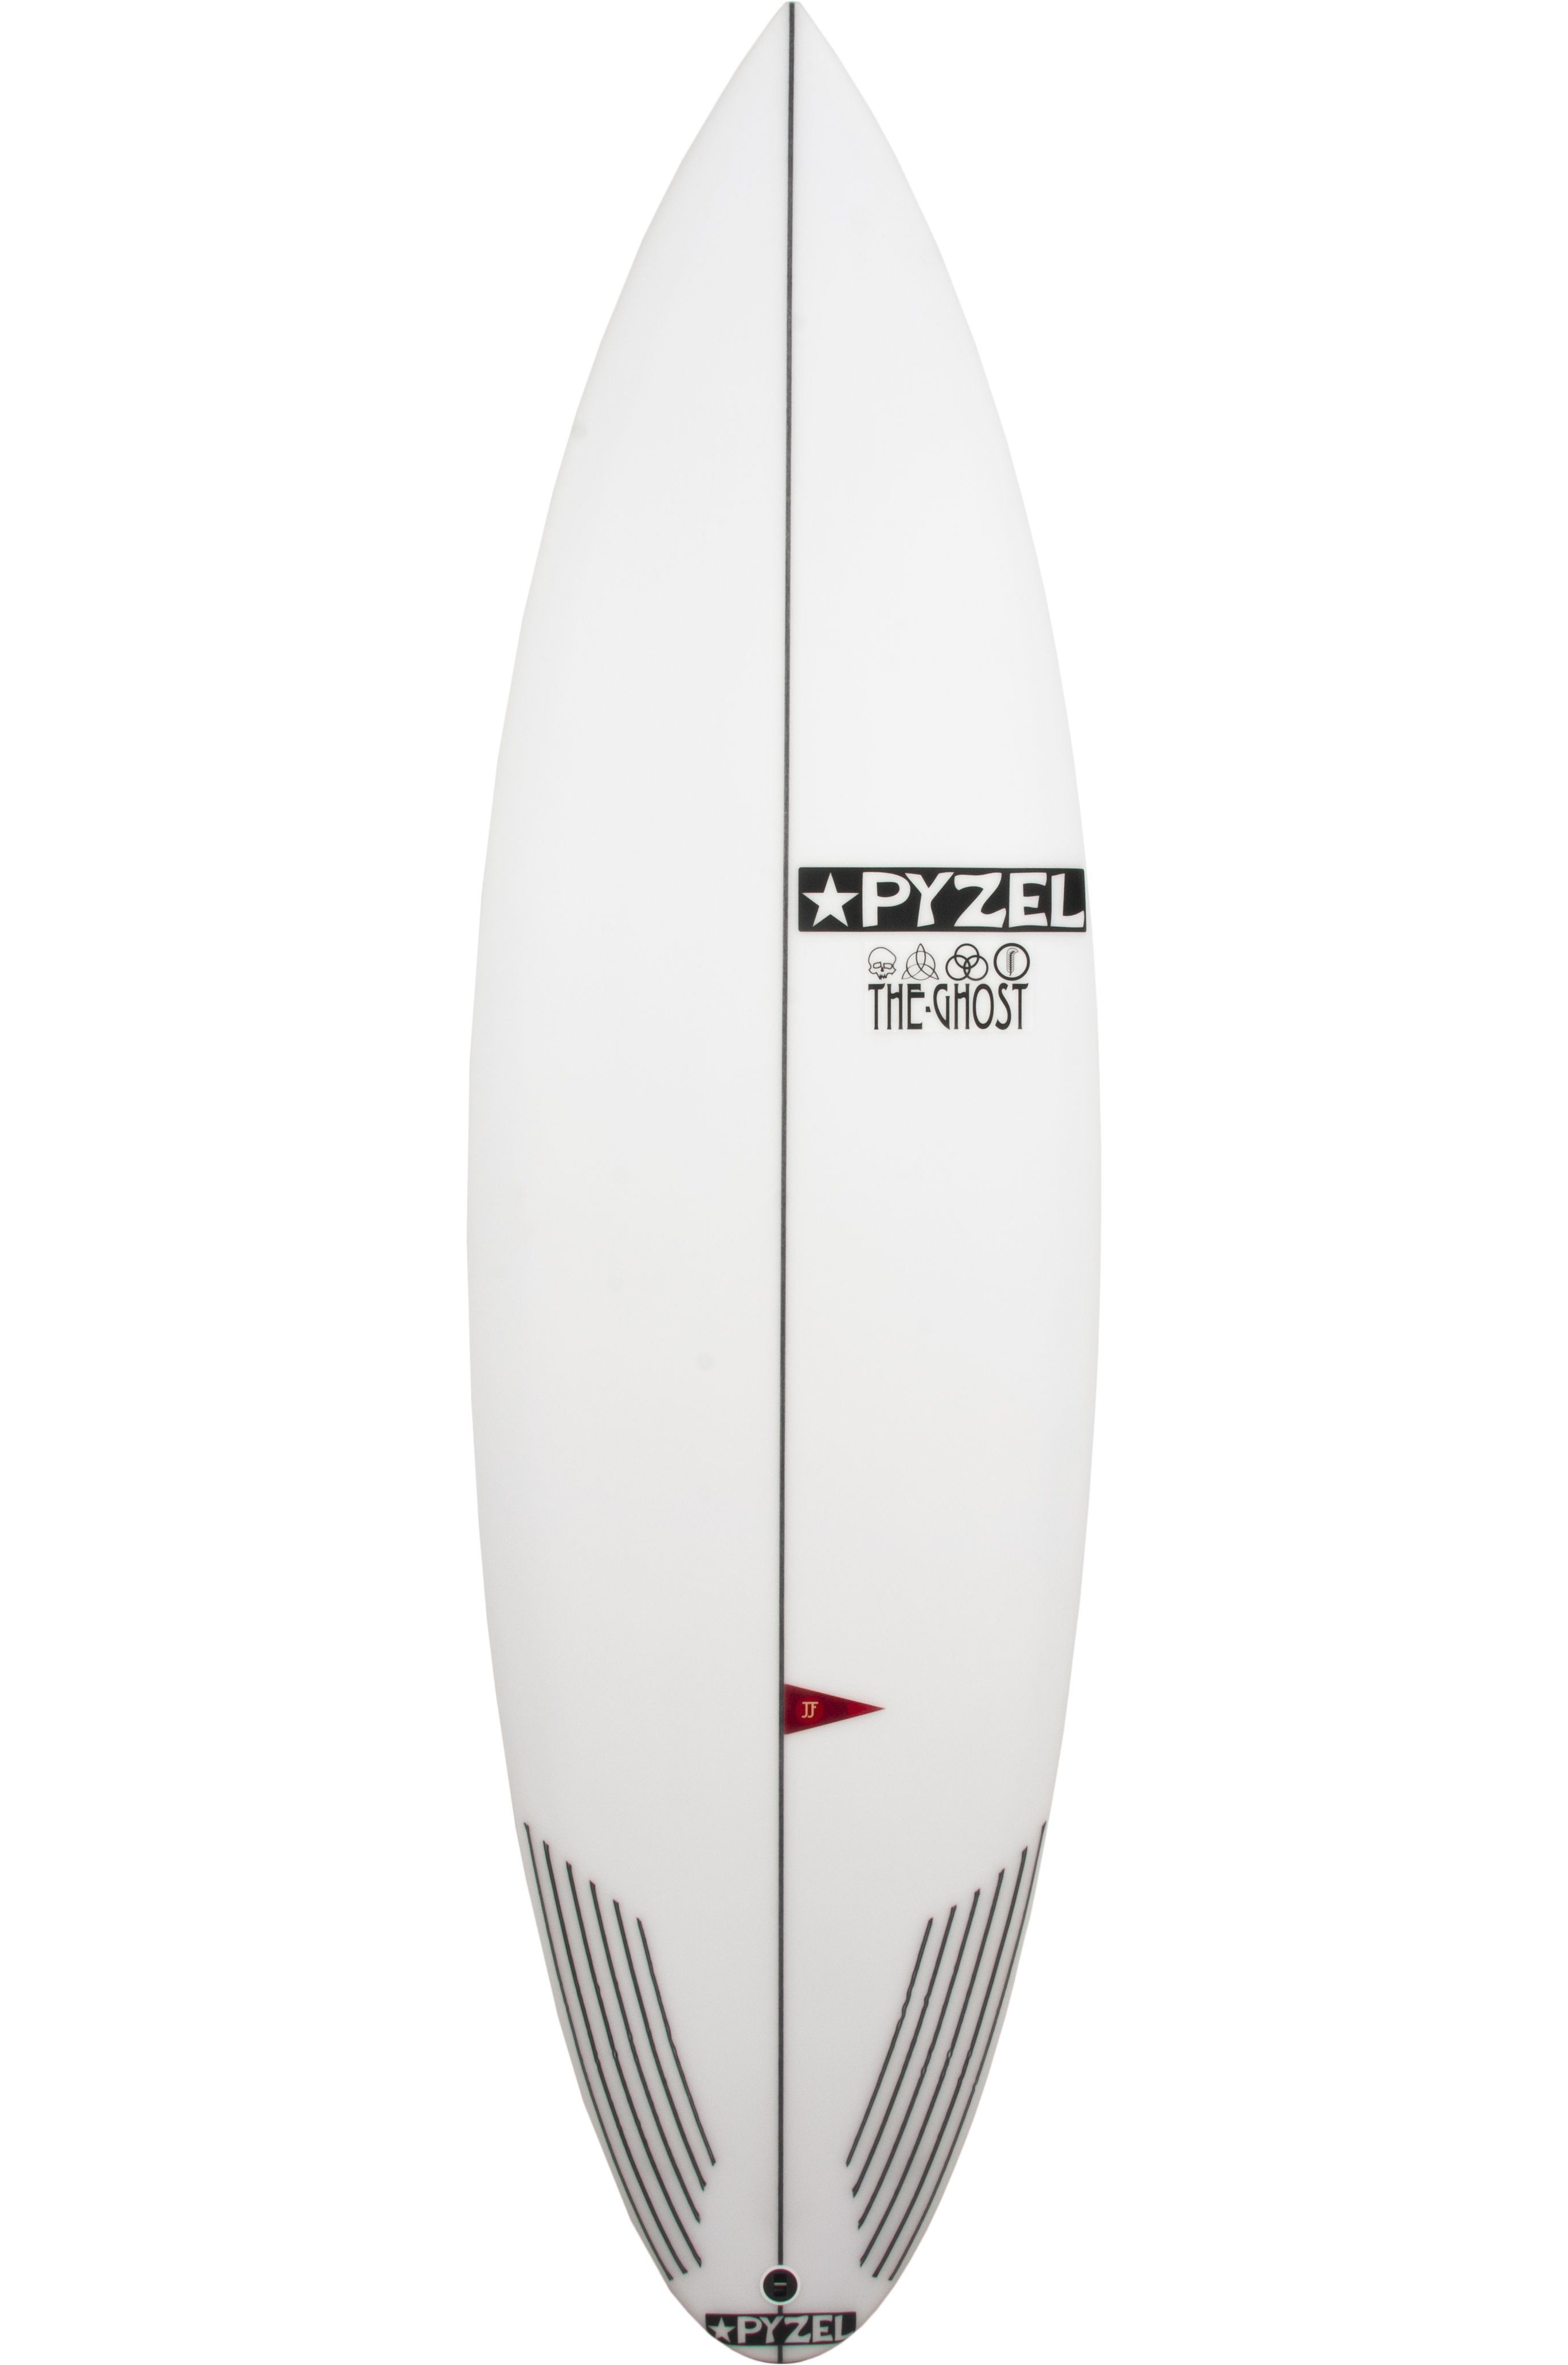 Prancha Surf Pyzel 5'11 GHOST Round Pin Tail - White FCS II Multisystem 5ft11